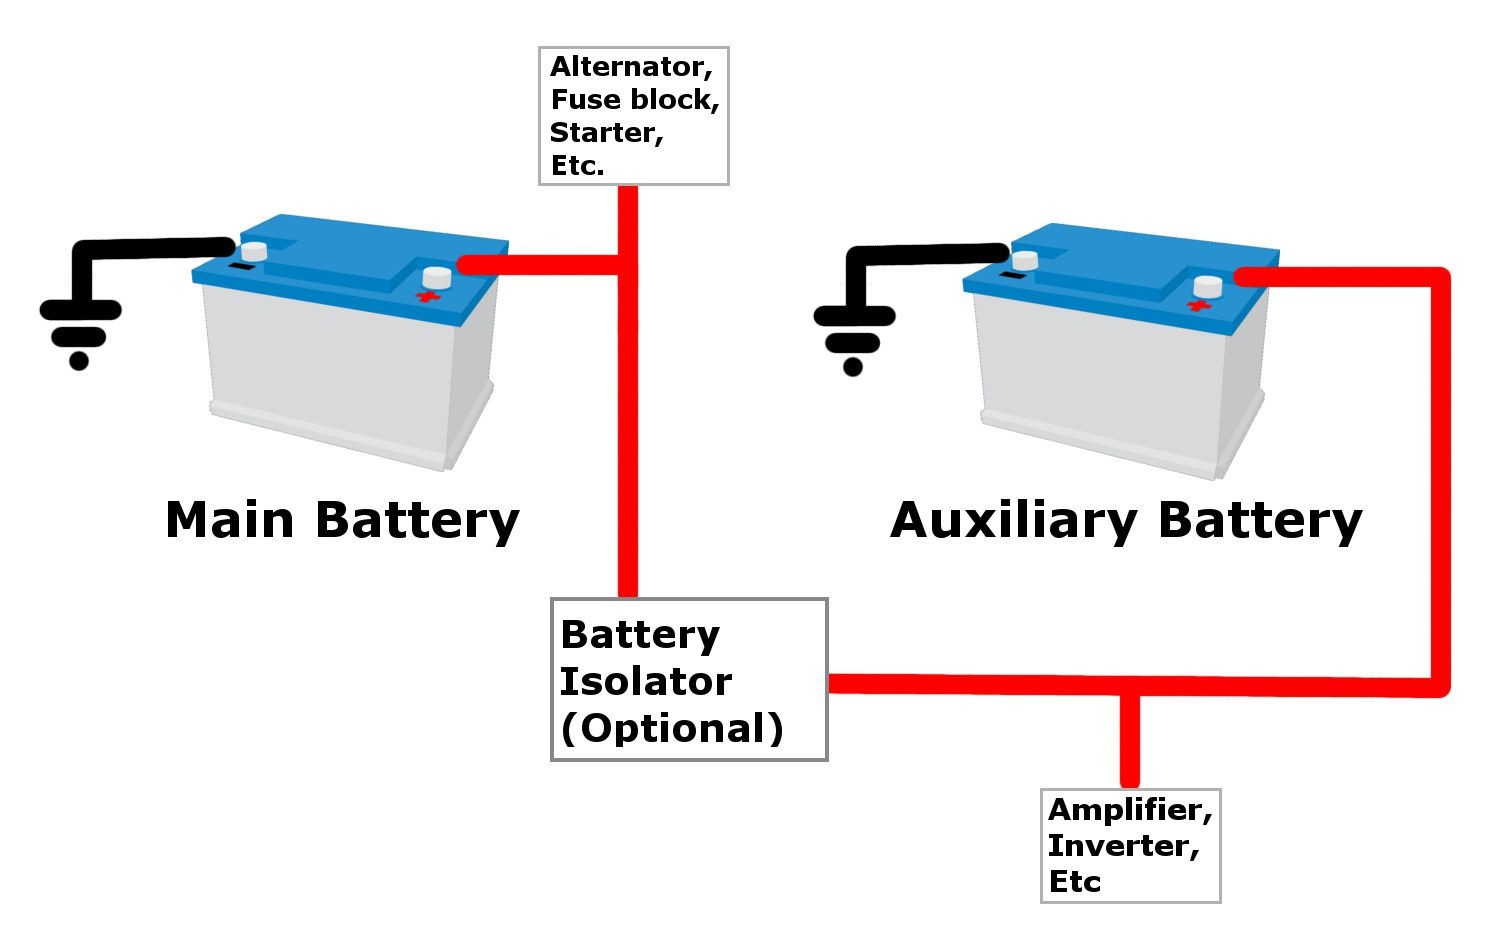 Is It Safe To Add An Auxiliary Battery?